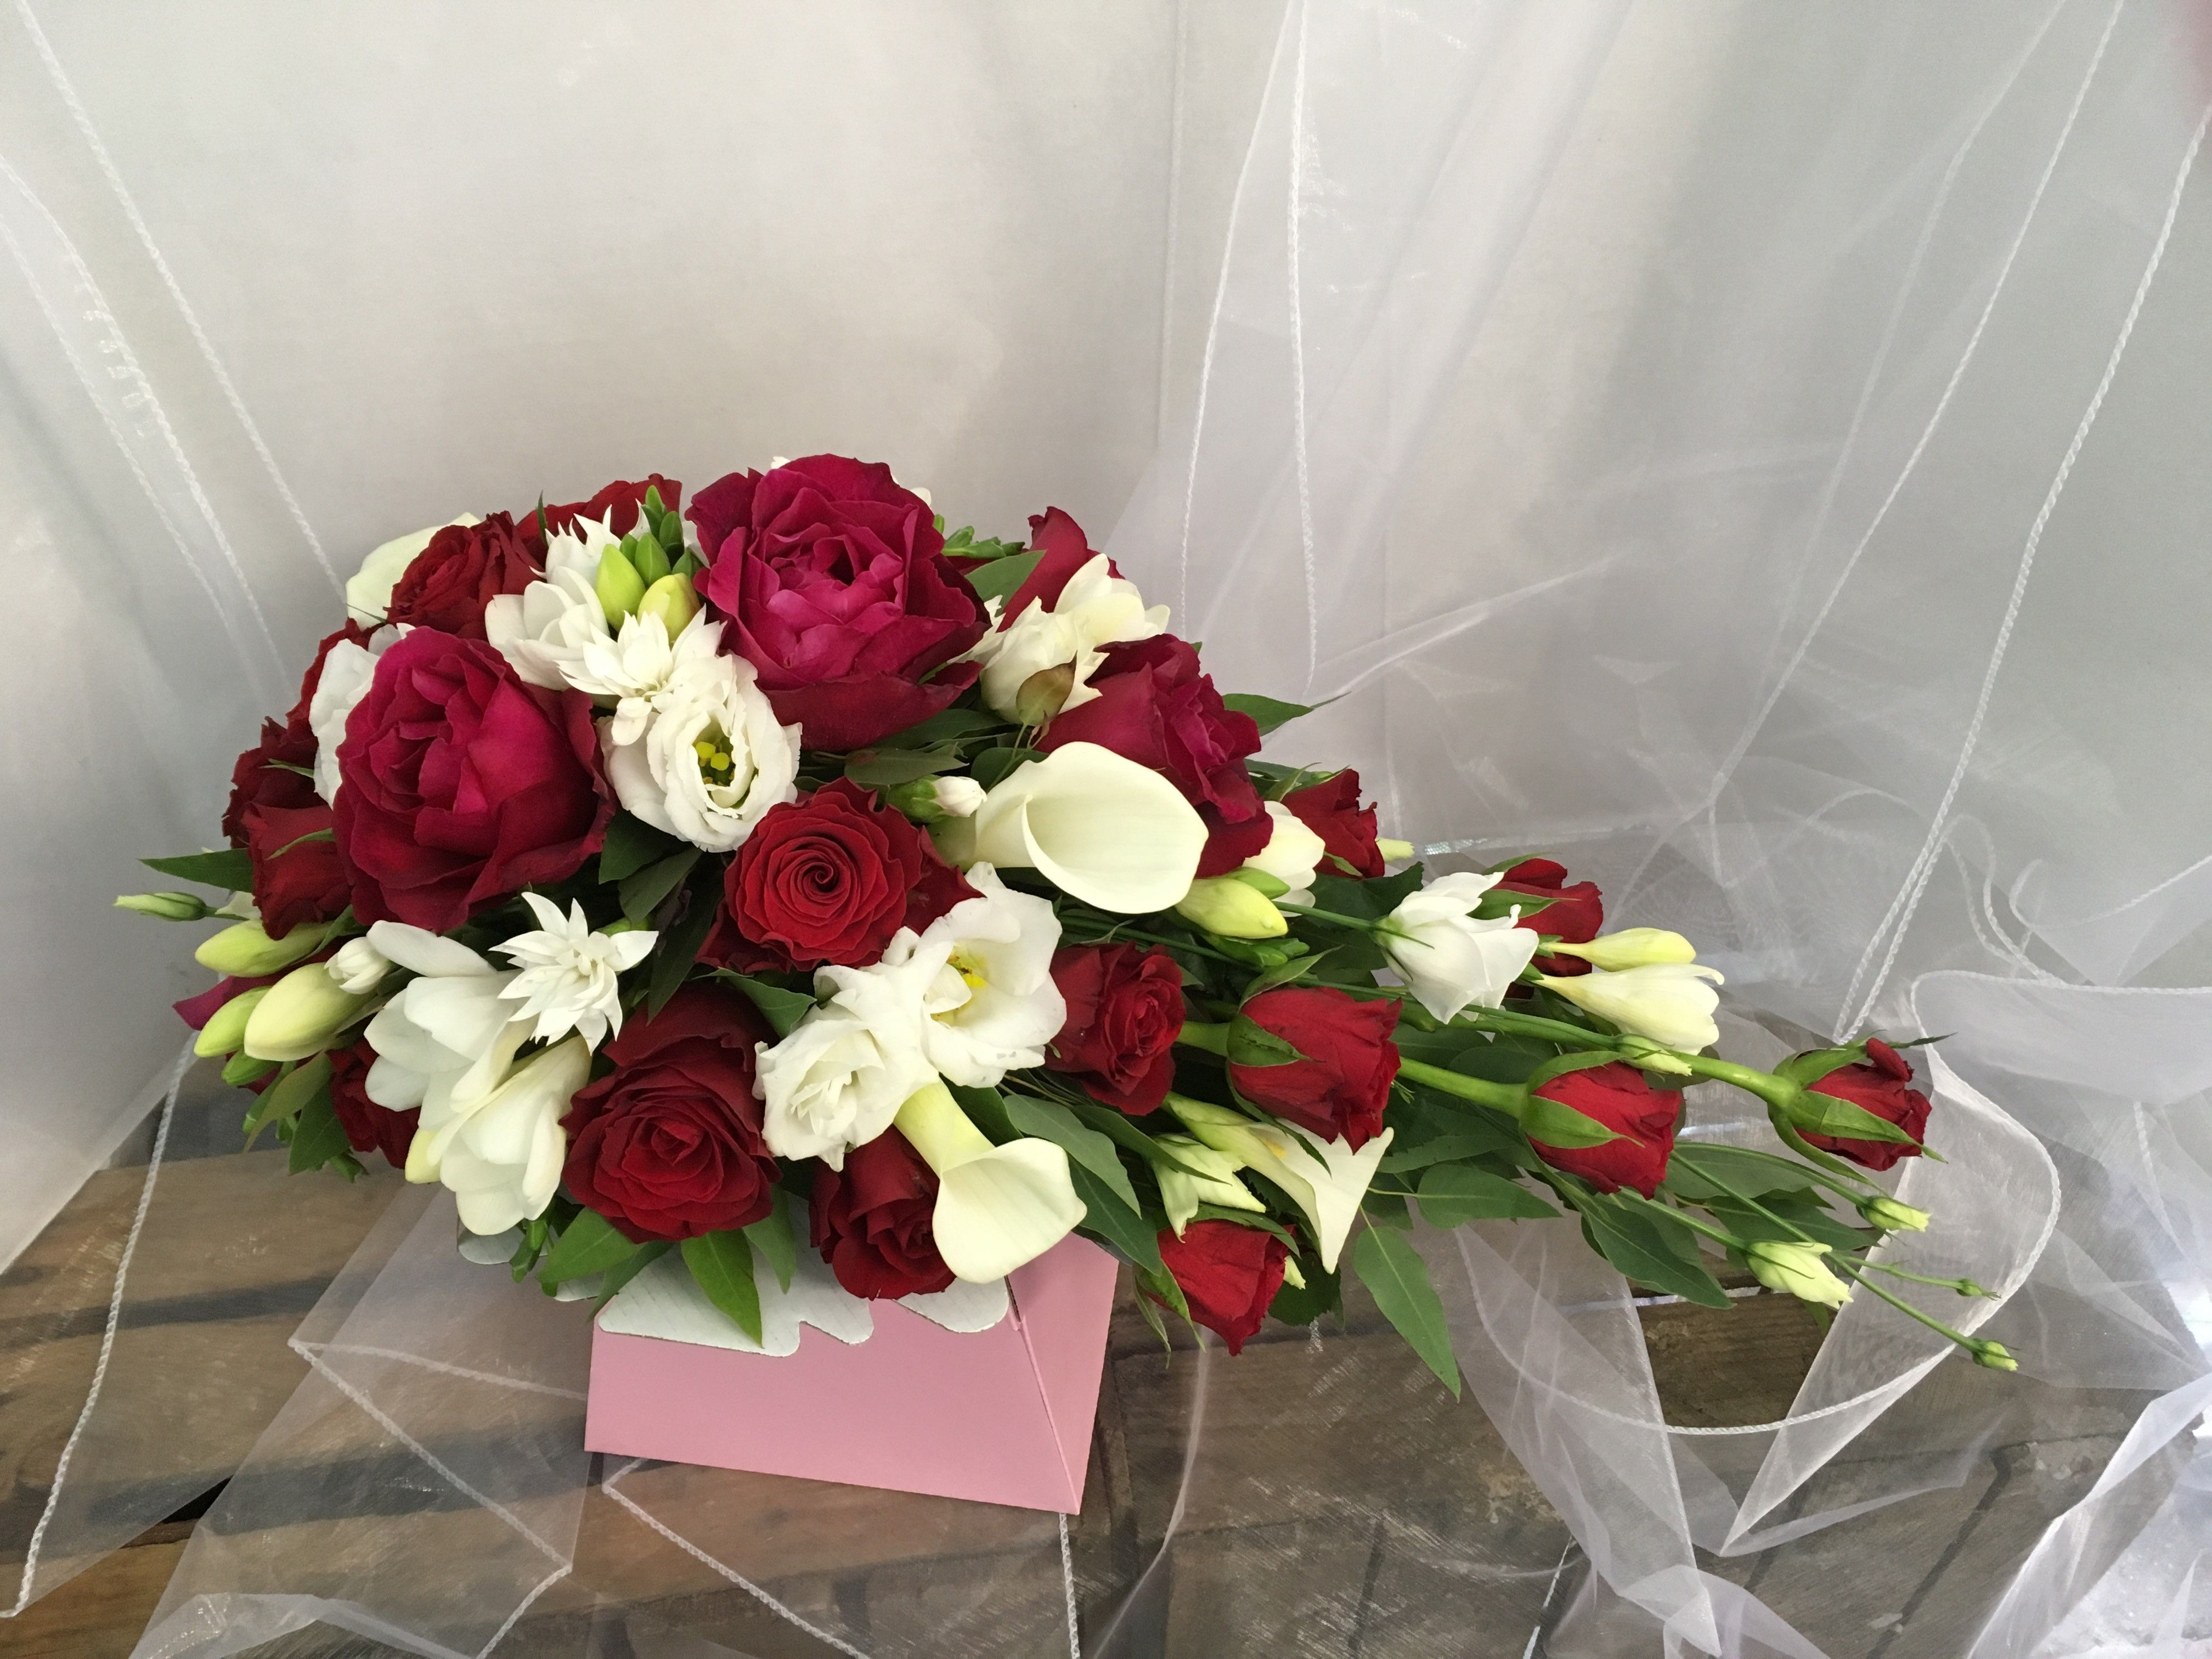 Gorgeous Red Rose And White Seasonal Flowers Brides Bridal Teardrop